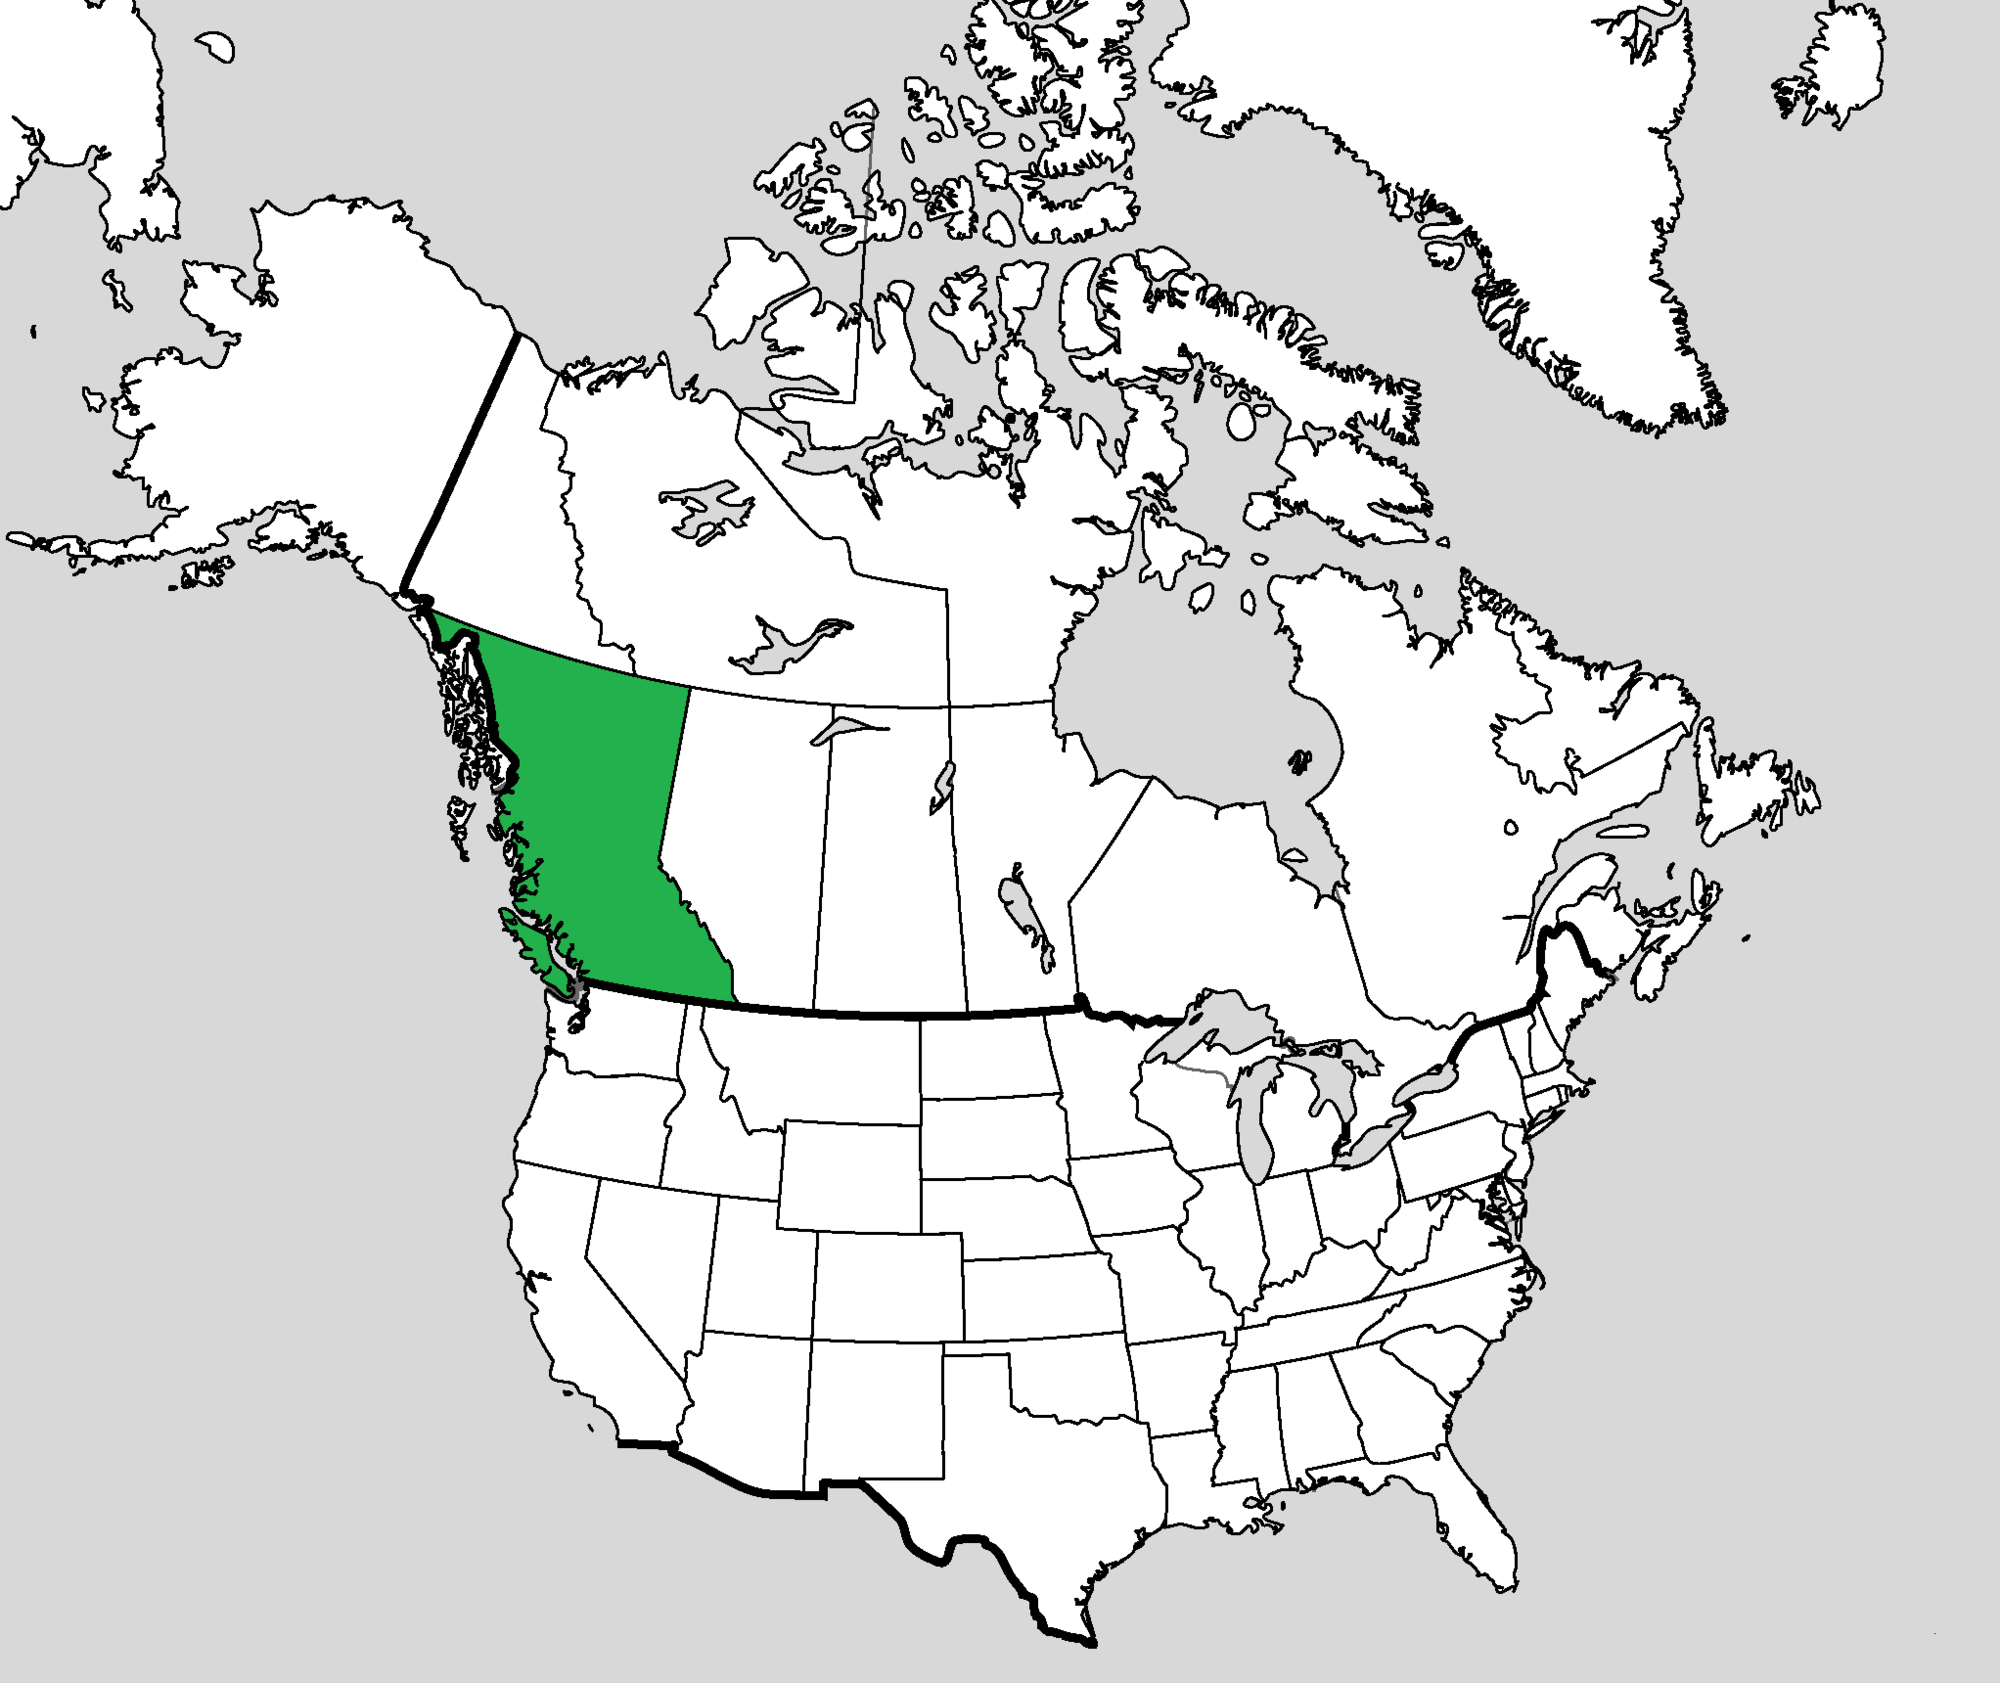 british columbia the era of relative peace alternative history British Columbia Scenery british columbia the era of relative peace alternative history fandom powered by wikia